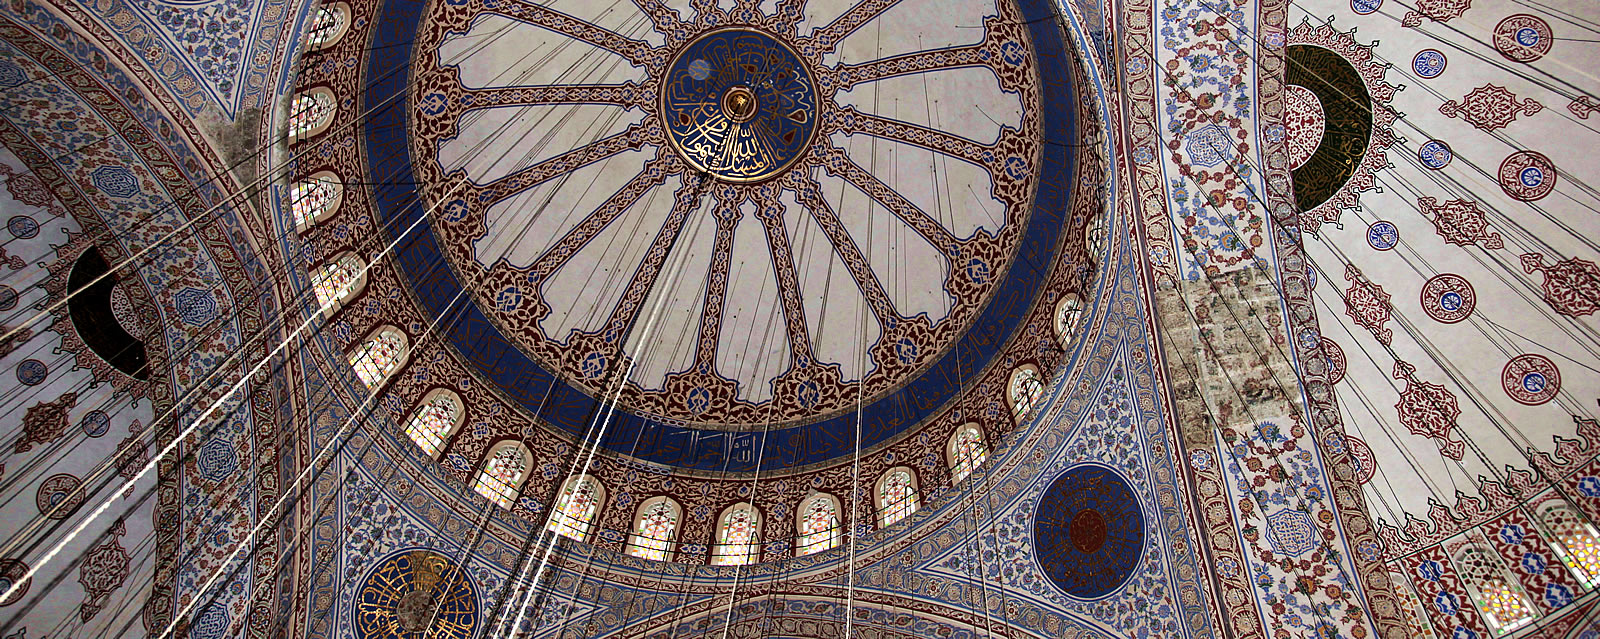 Ceiling of Blue Mosque in Istanbul